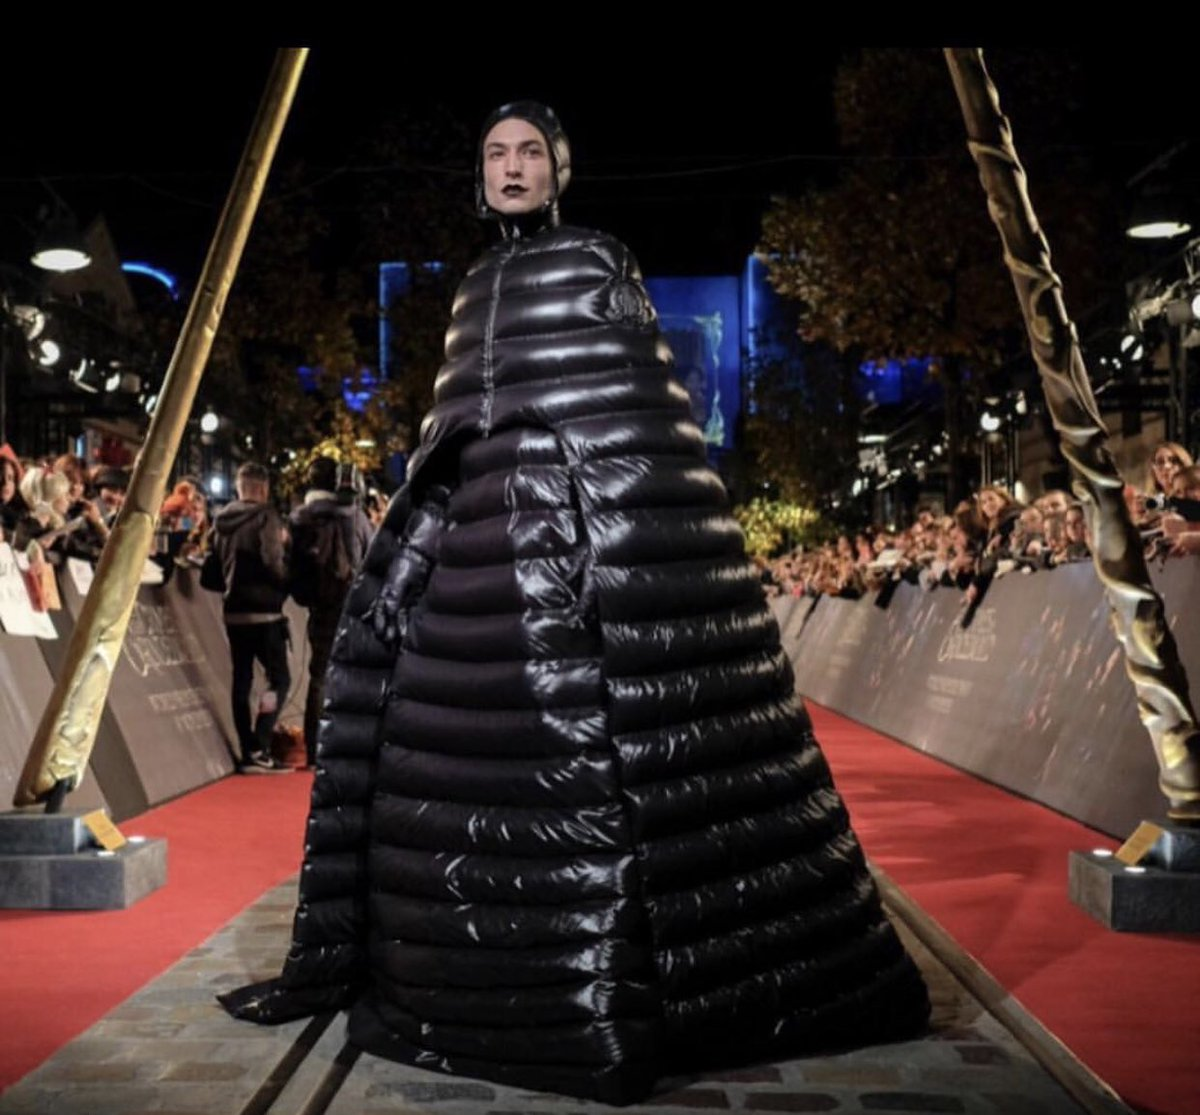 Ezra Miller brought GLAMOUR to the Fantastic Beasts sequel premiere in Paris today. https://t.co/u12v478DpL